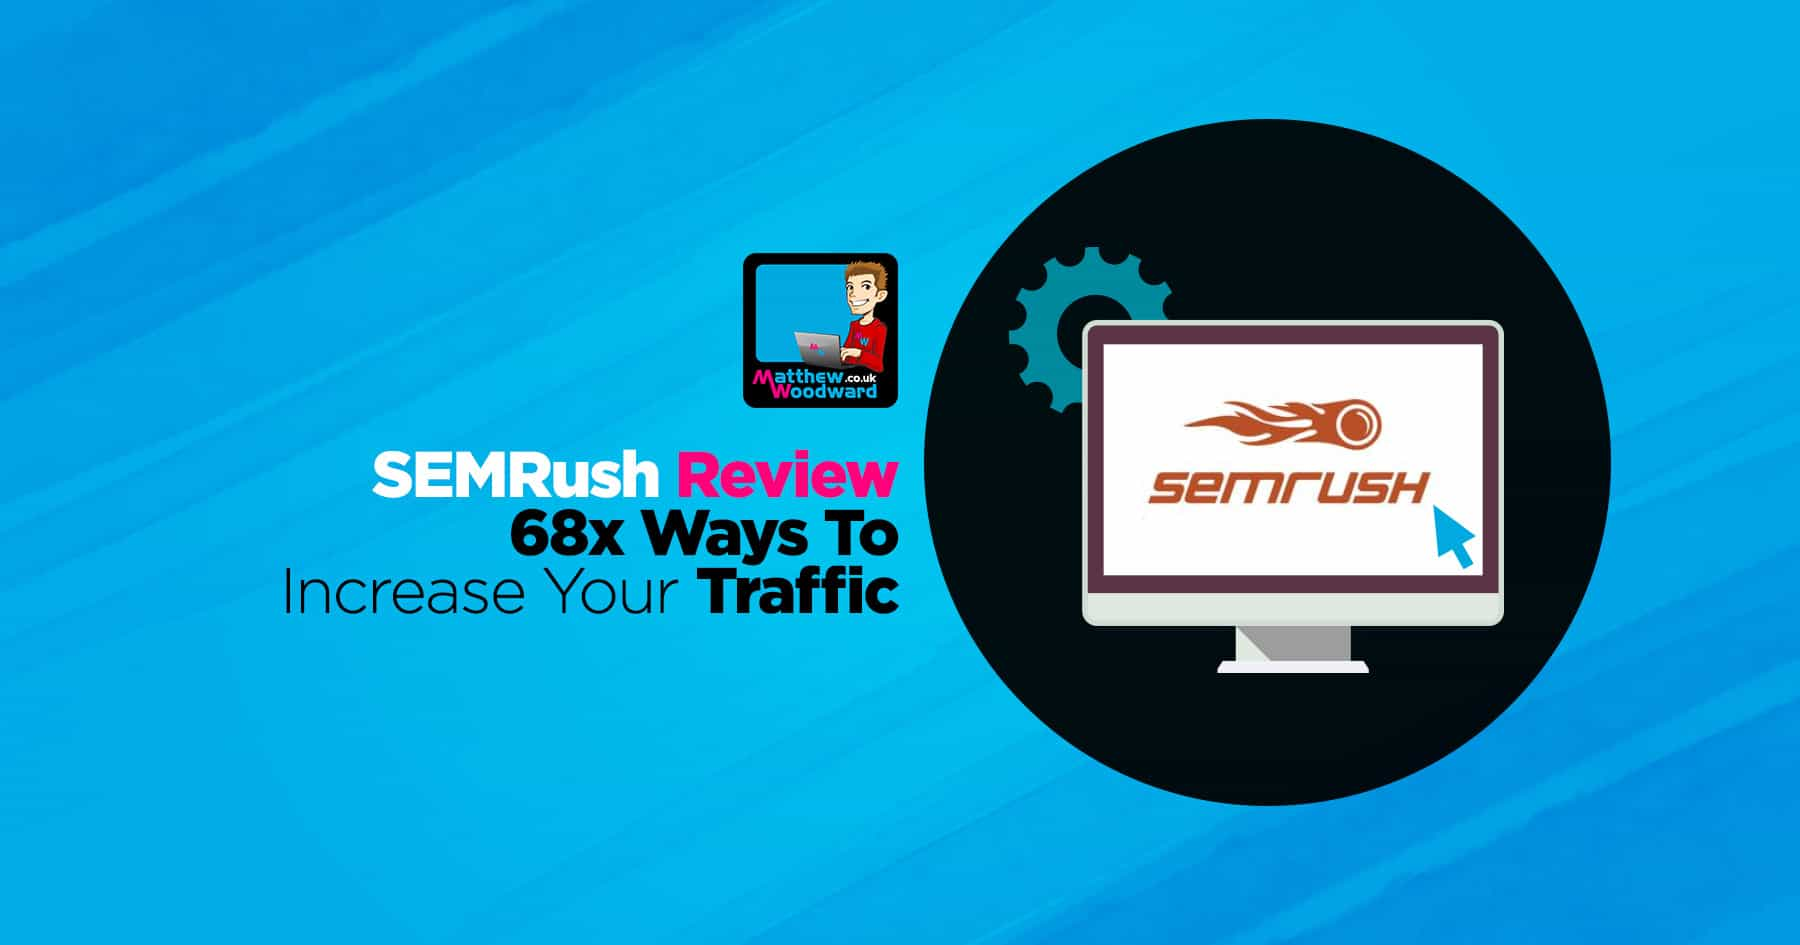 Semrush Seo Software Deals Near Me April 2020